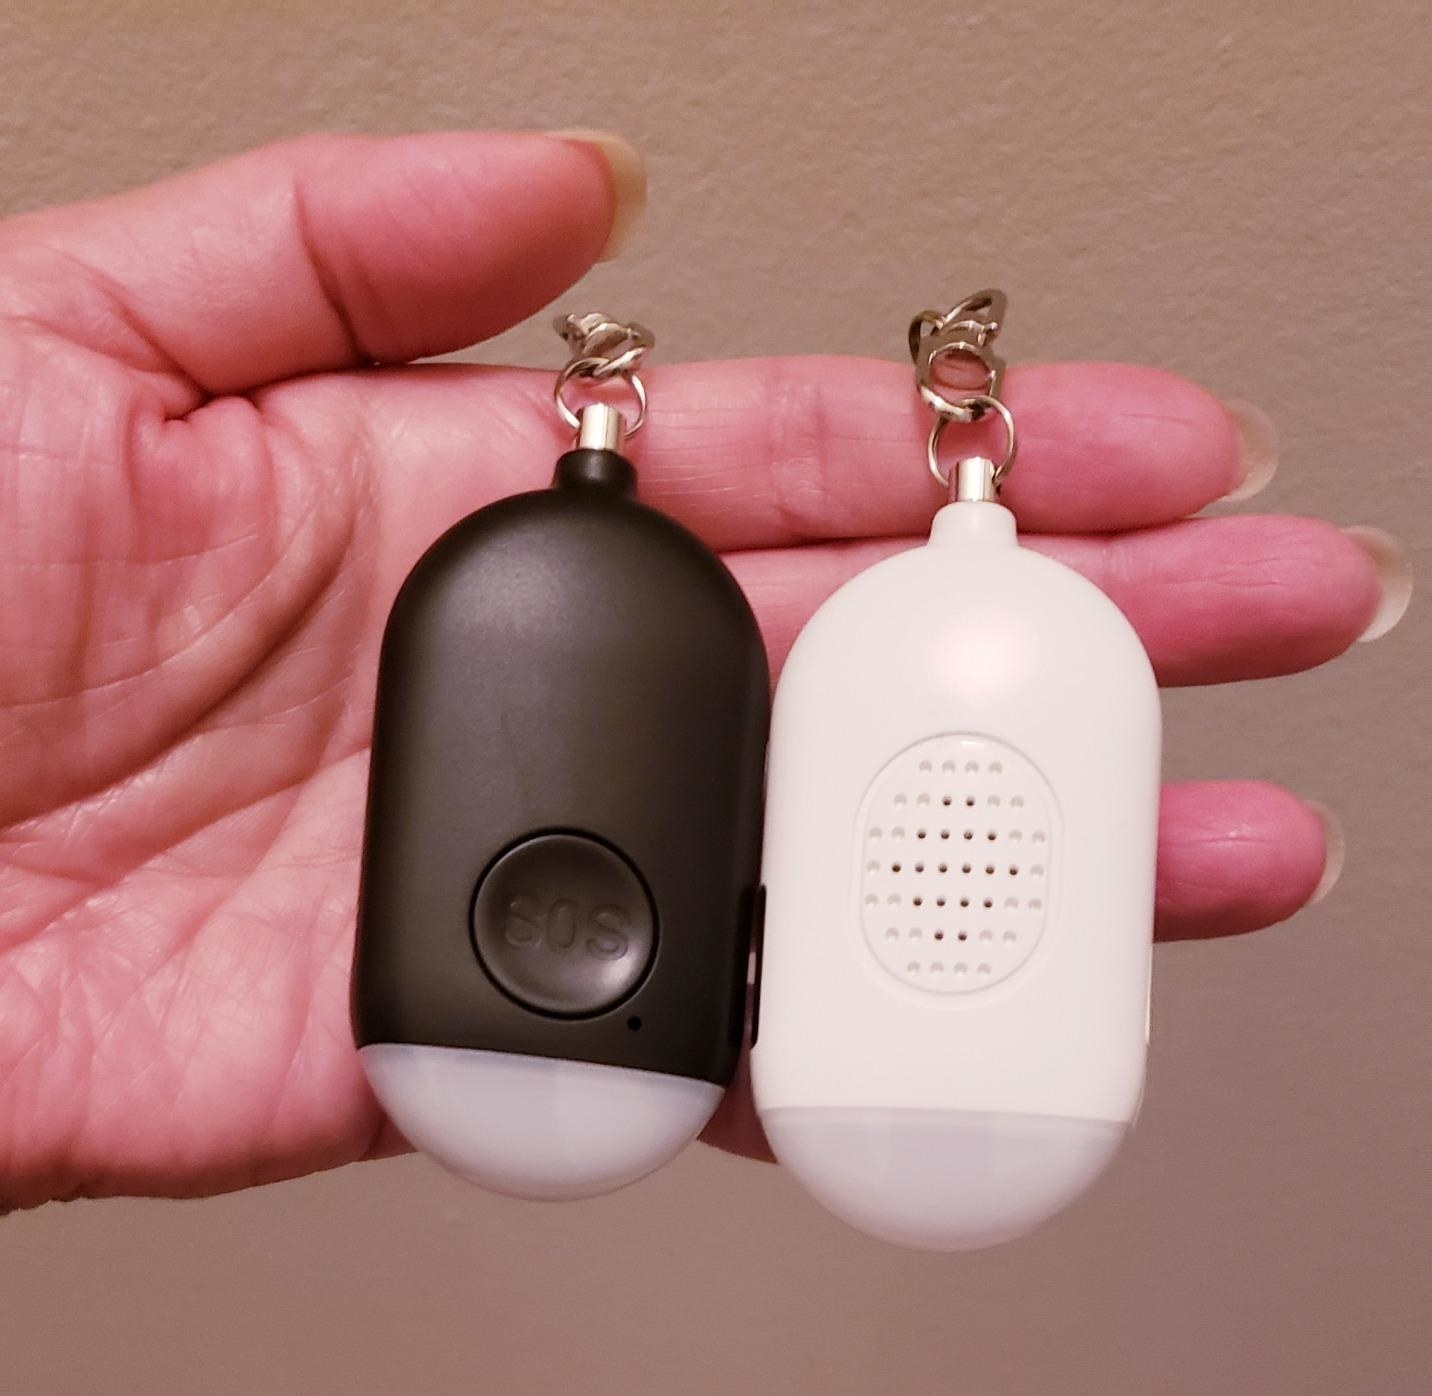 Reviewer holding SOS keychain alarm